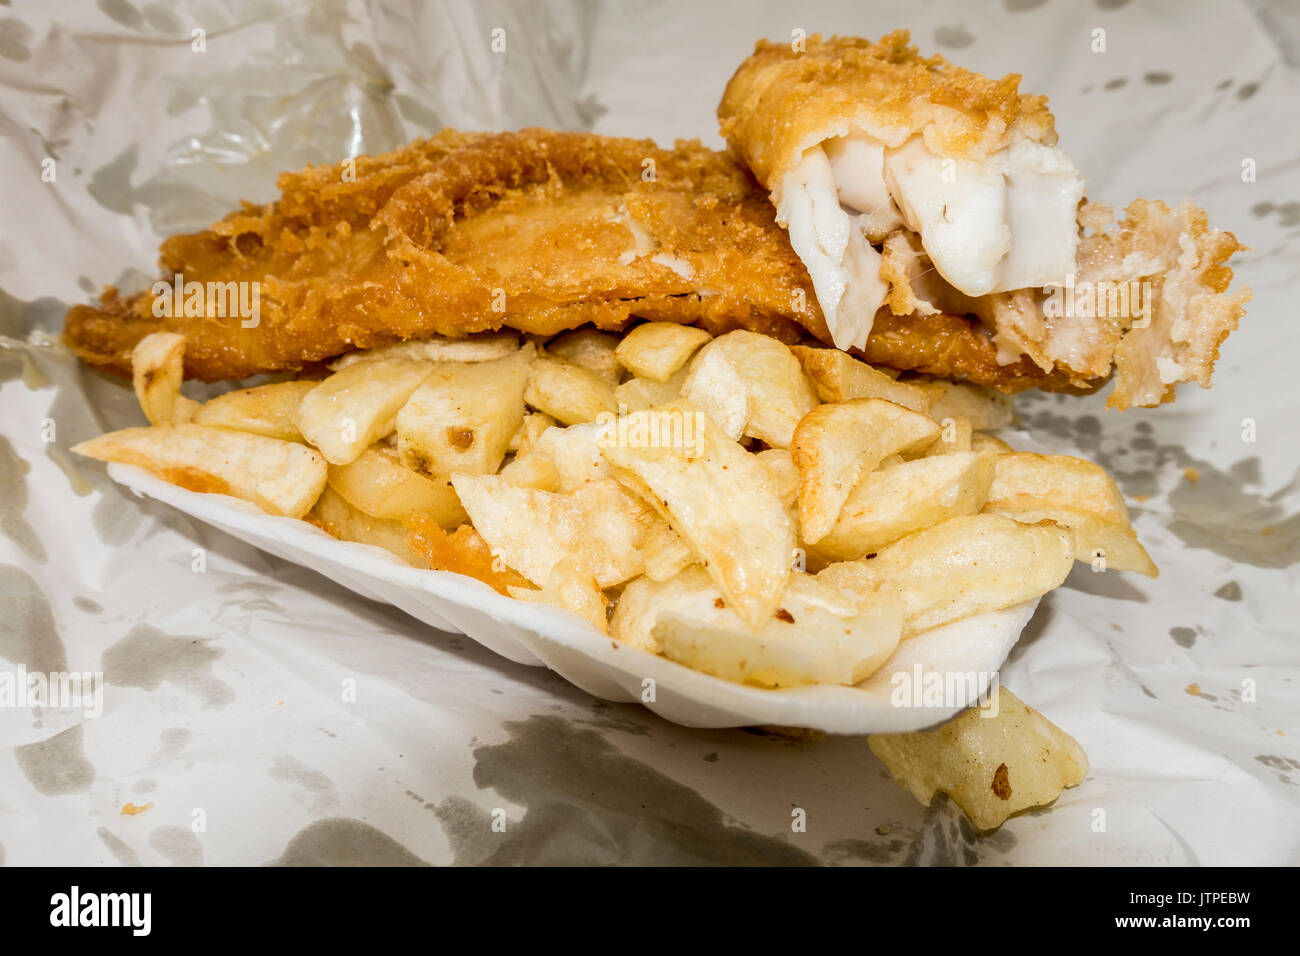 Traditional British fast food takeaway meal of battered fish and chips, in the container and paper wrapping. Stock Photo